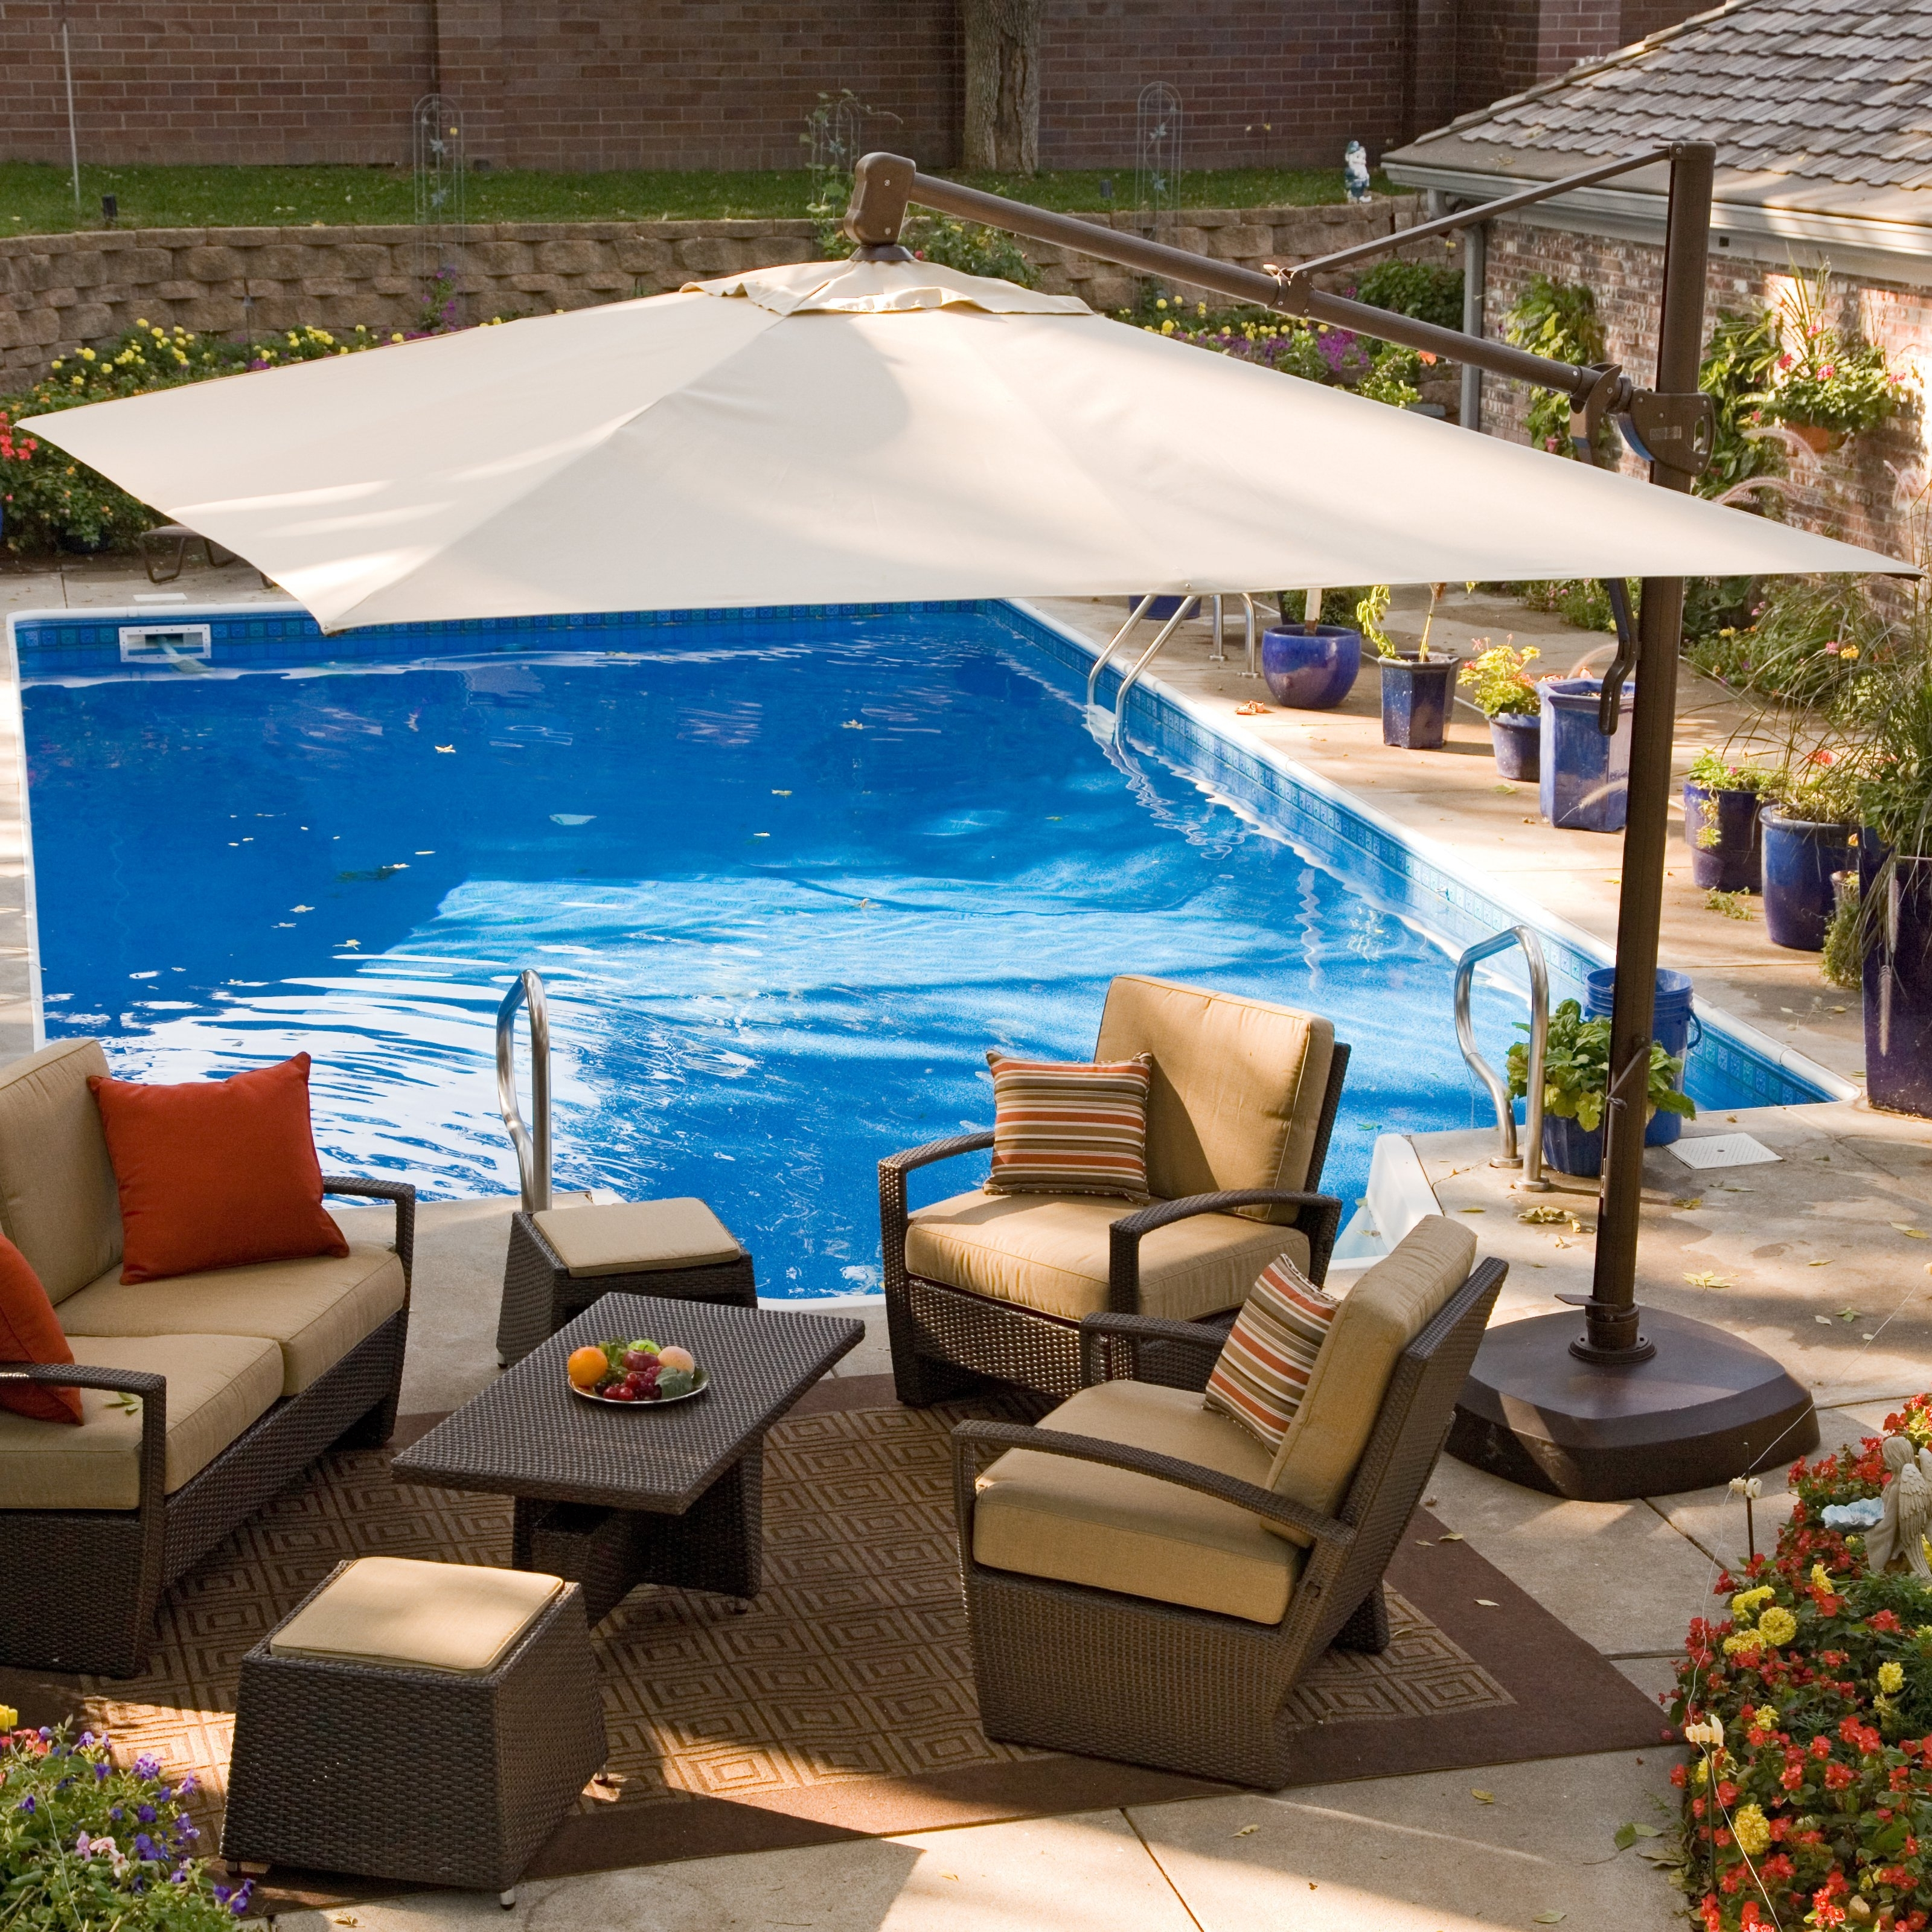 Famous Heavy Duty Patio Umbrellas Pertaining To Easylovely Heavy Duty Rectangular Patio Umbrella F23X About Remodel (View 3 of 20)